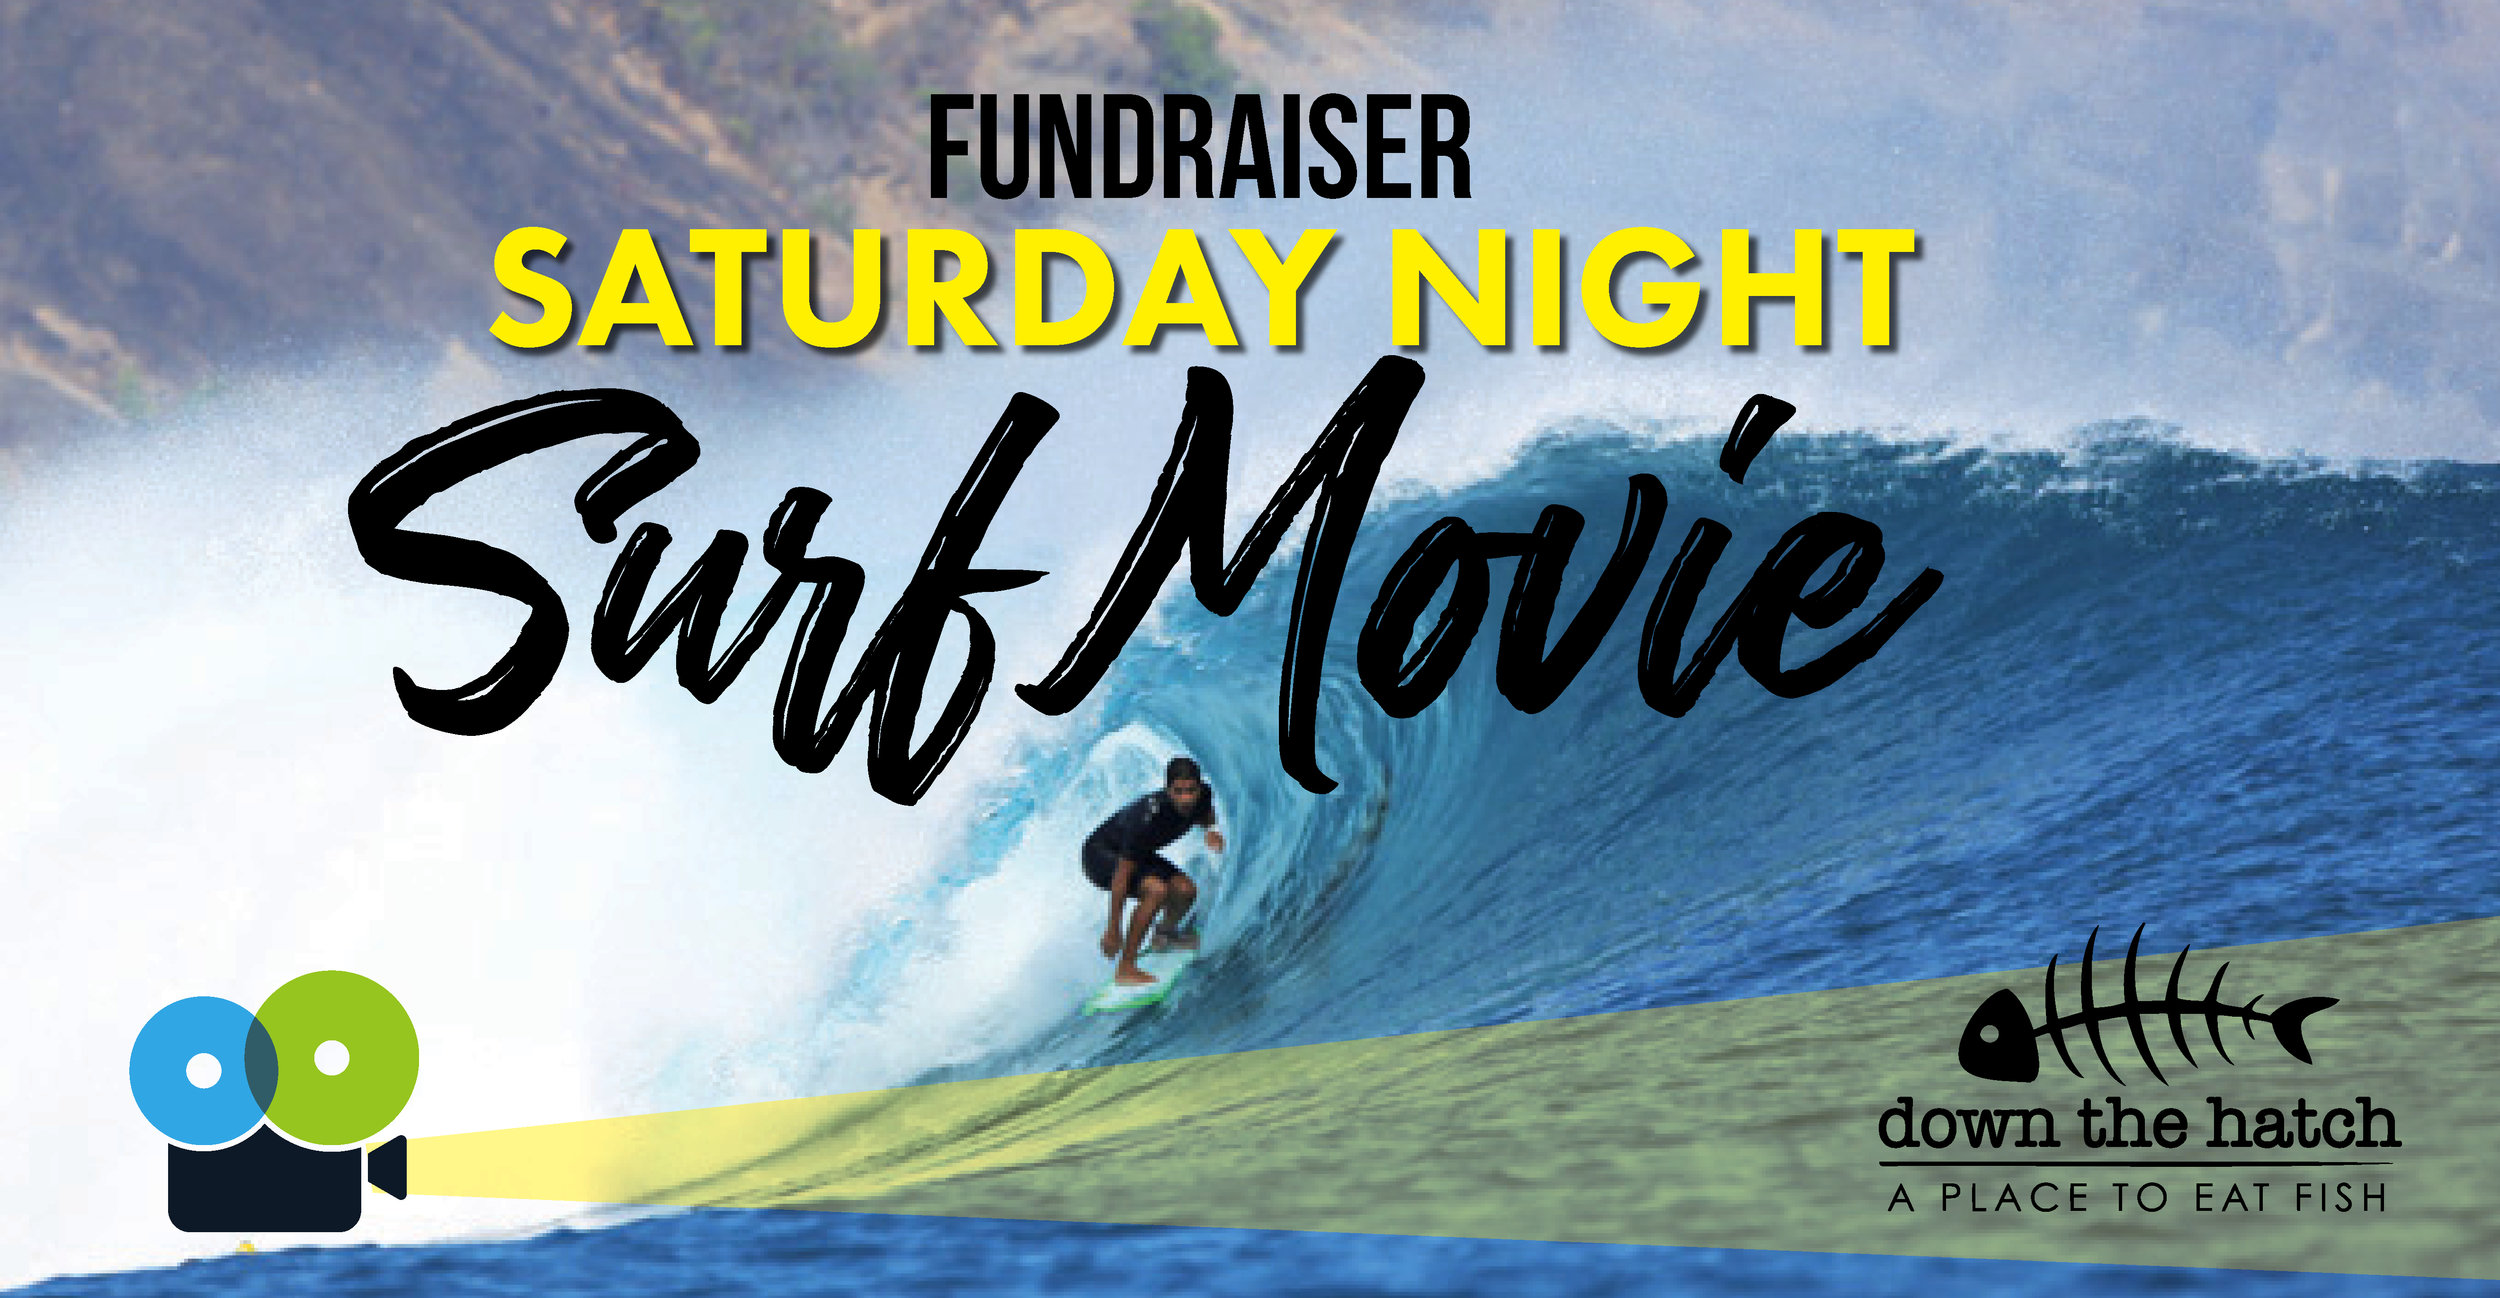 06-10 DTH SATURDAY NIGHT SURF MOVIE FACEBOOK.jpg